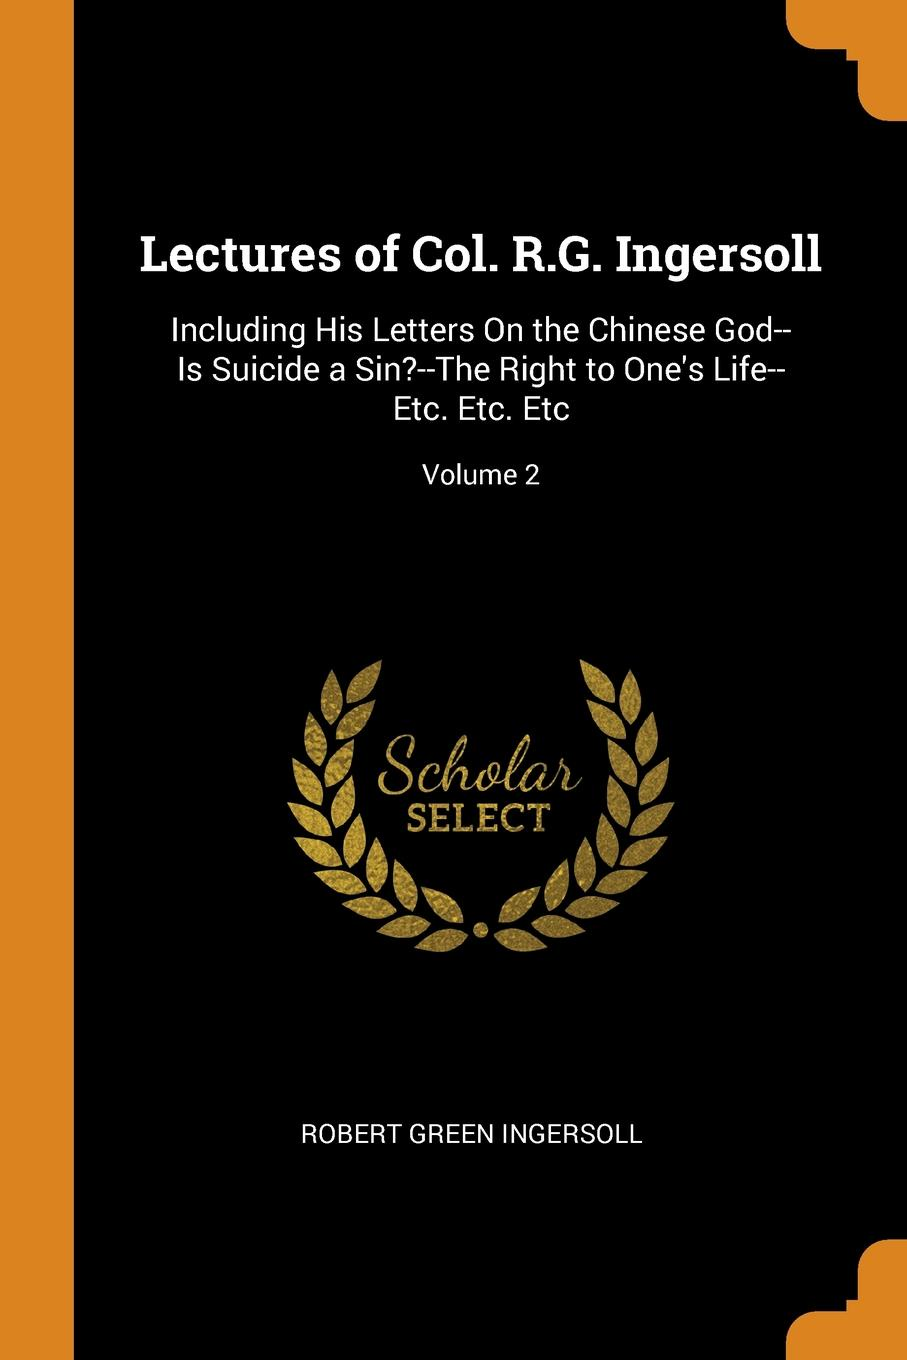 Robert Green Ingersoll Lectures of Col. R.G. Ingersoll. Including His Letters On the Chinese God--Is Suicide a Sin.--The Right to One.s Life--Etc. Etc. Etc; Volume 2 robert green ingersoll the works of robert g ingersoll v 9